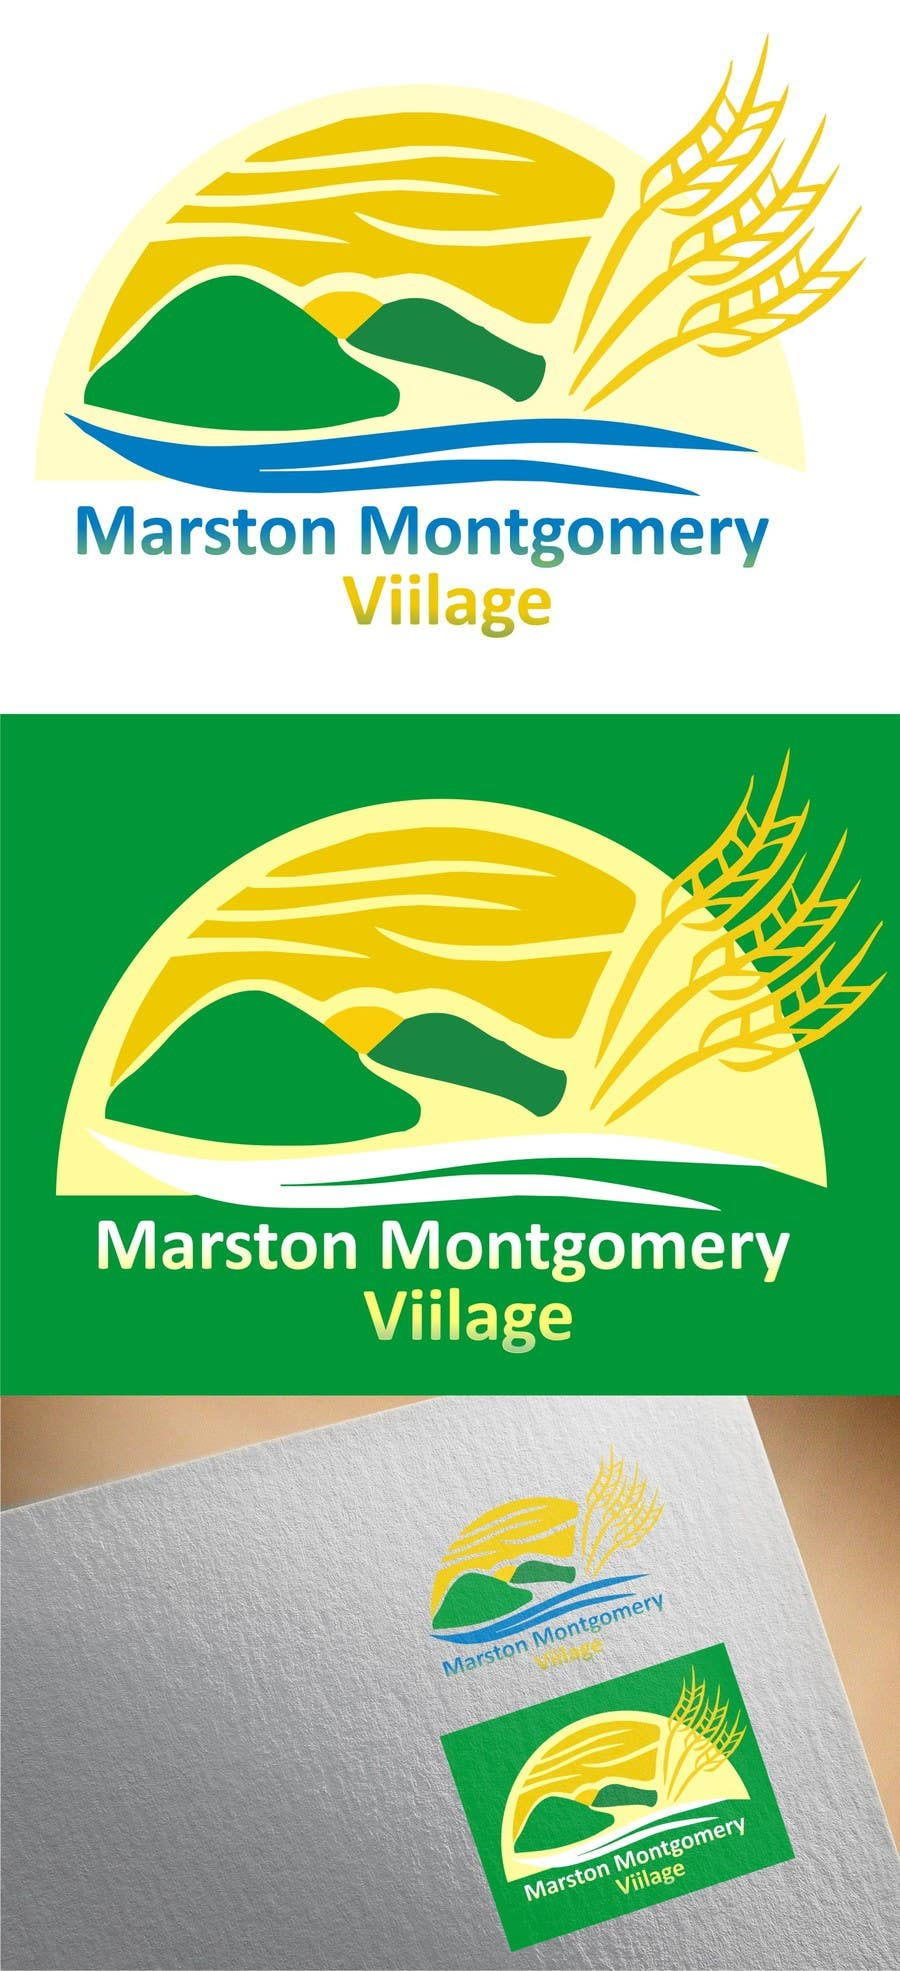 Contest Entry #                                        7                                      for                                         Design a Logo for Marston Montgomery Village Website